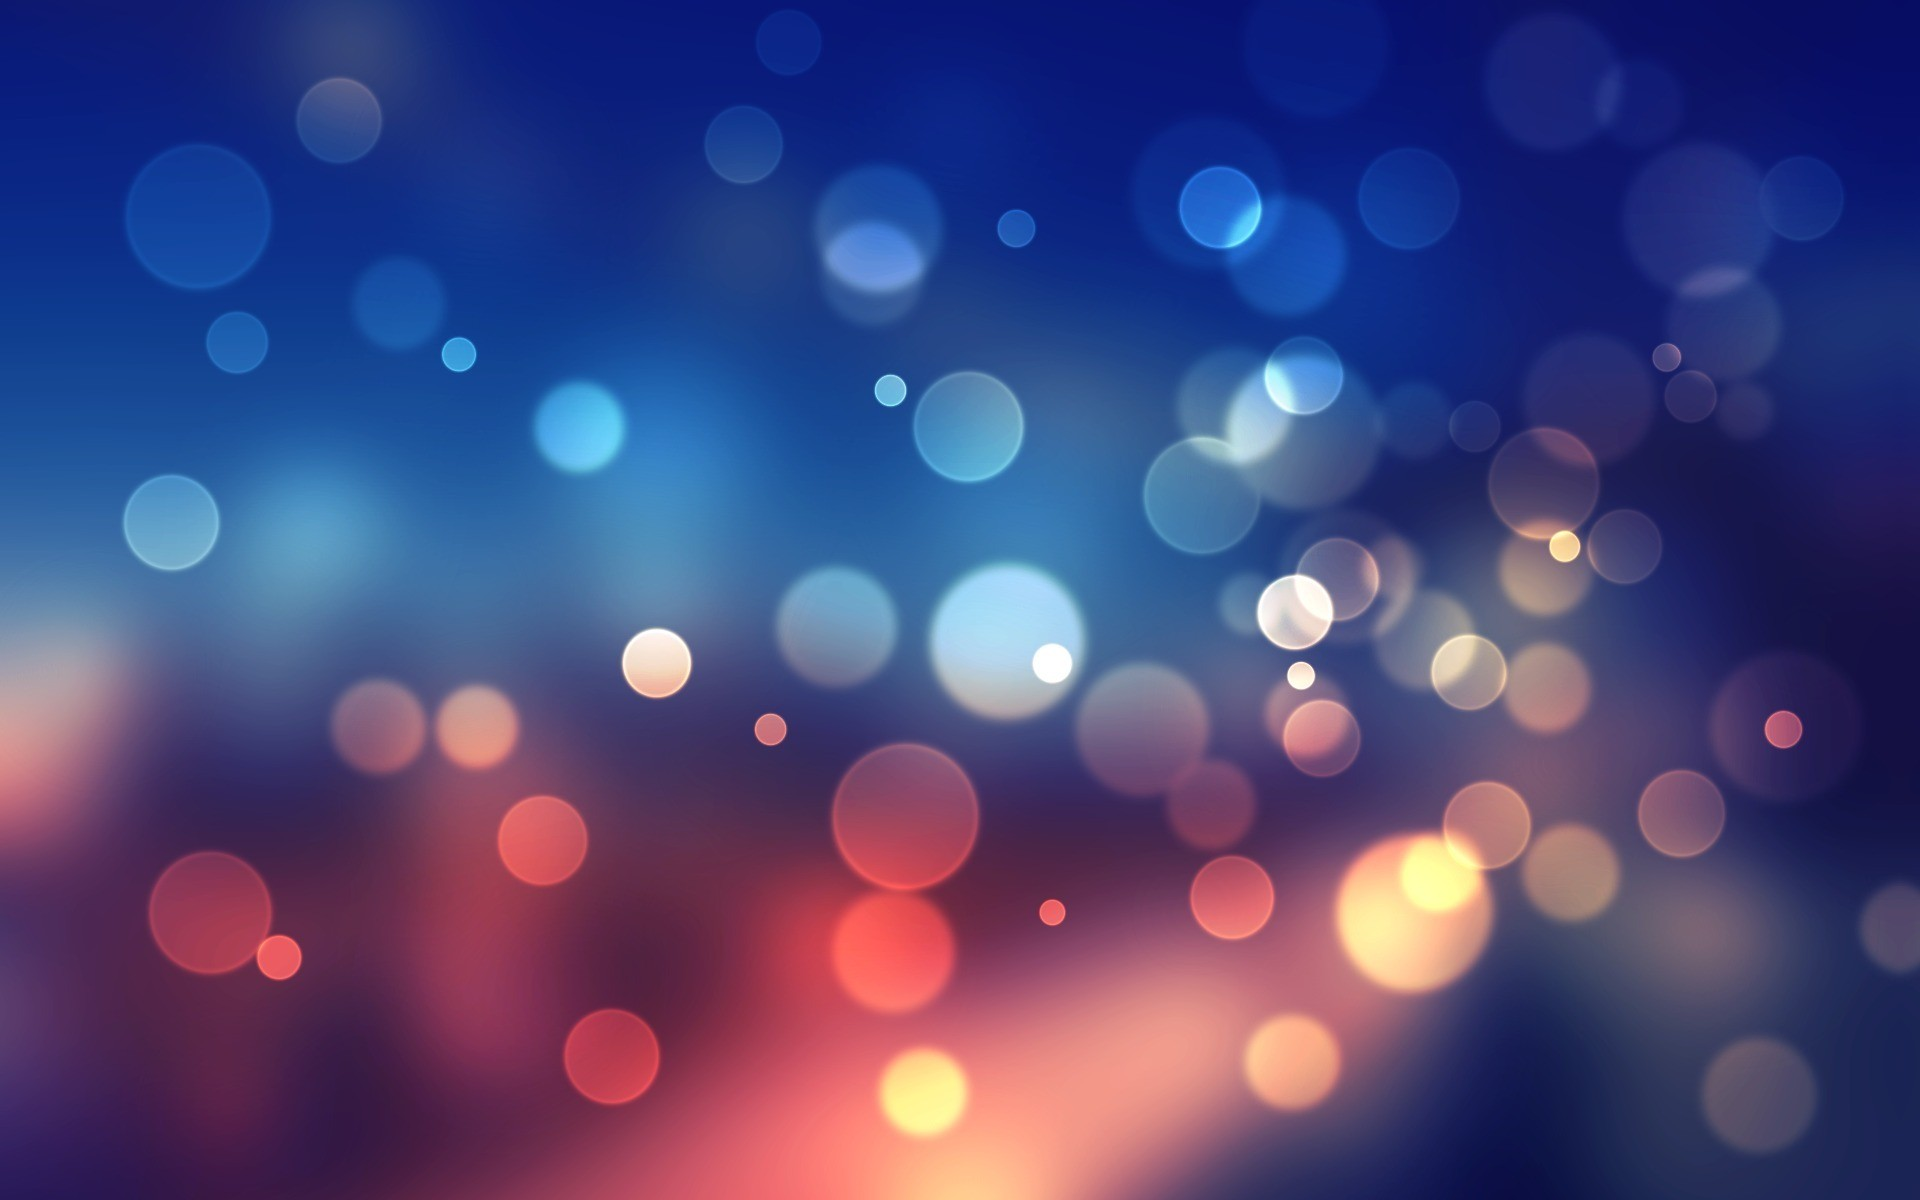 22251_1_miscellaneous_digital_art_bokeh_bokeh_lights (1)